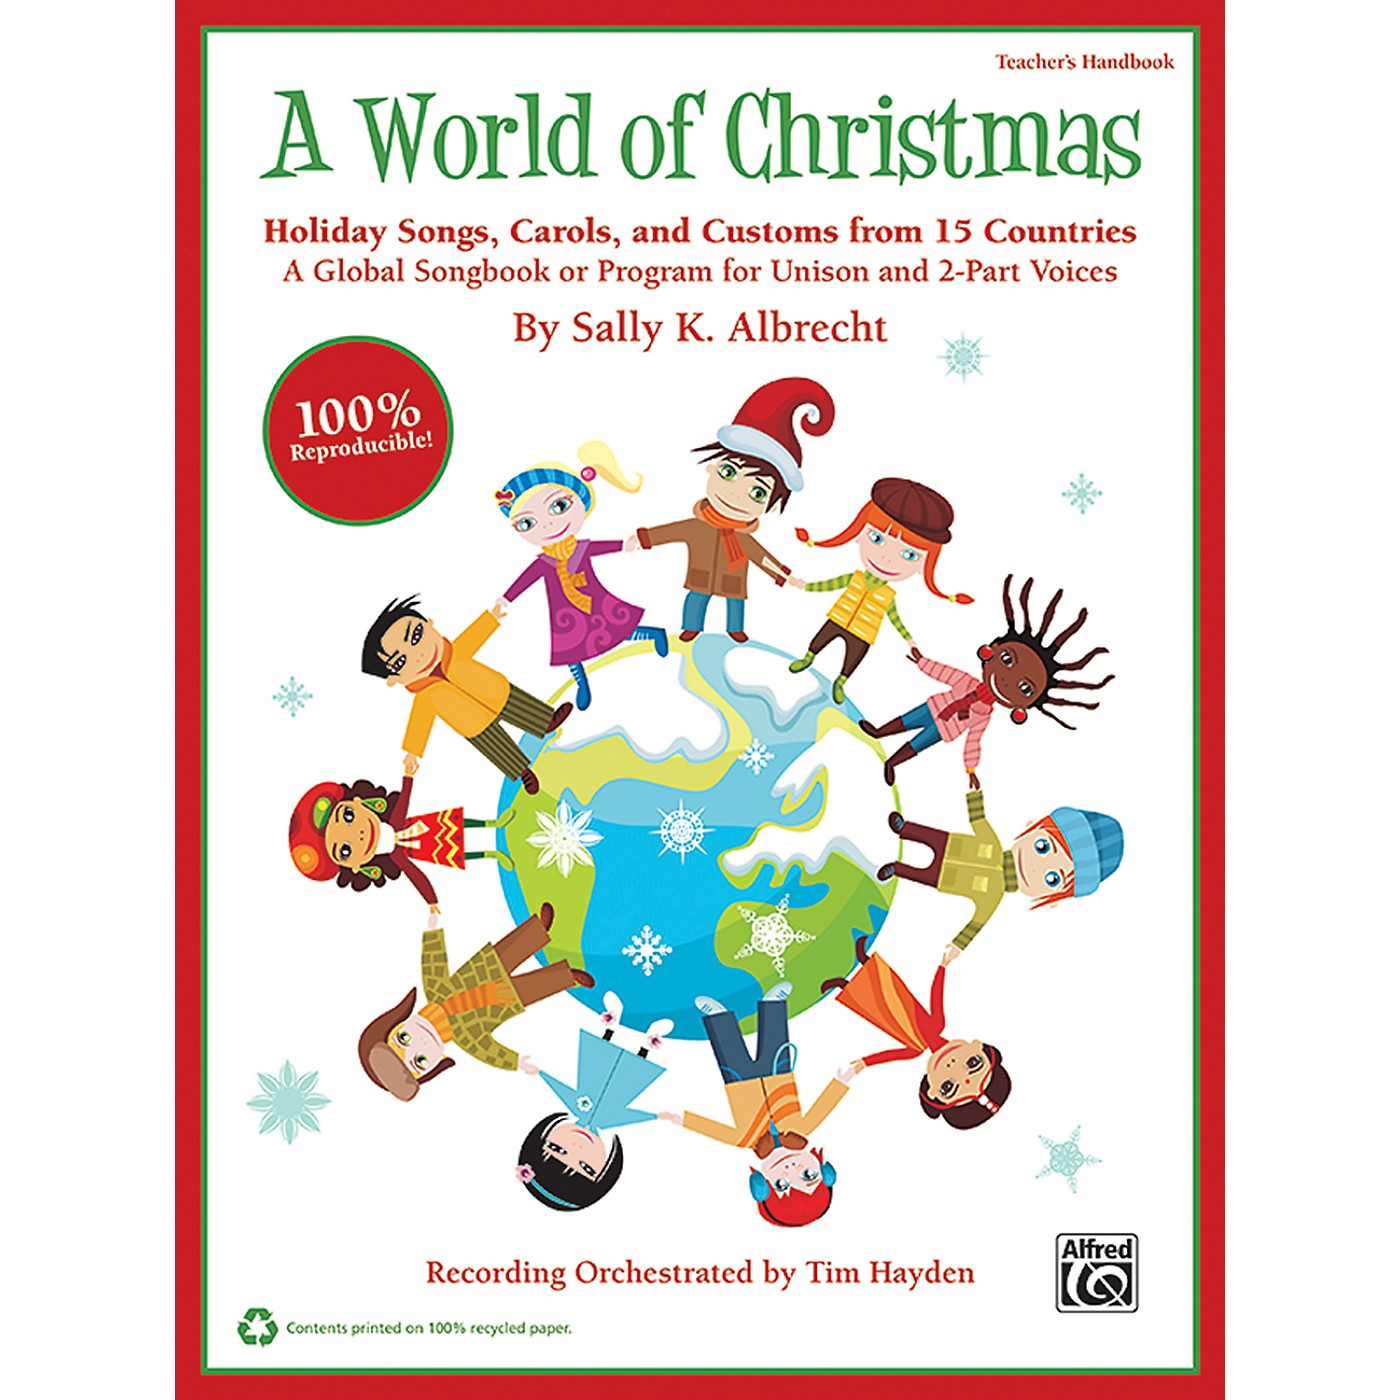 Alfred A World of Christmas: Holiday Songs, Carols, and Customs from 15 Countries Book & CD Kit thumbnail